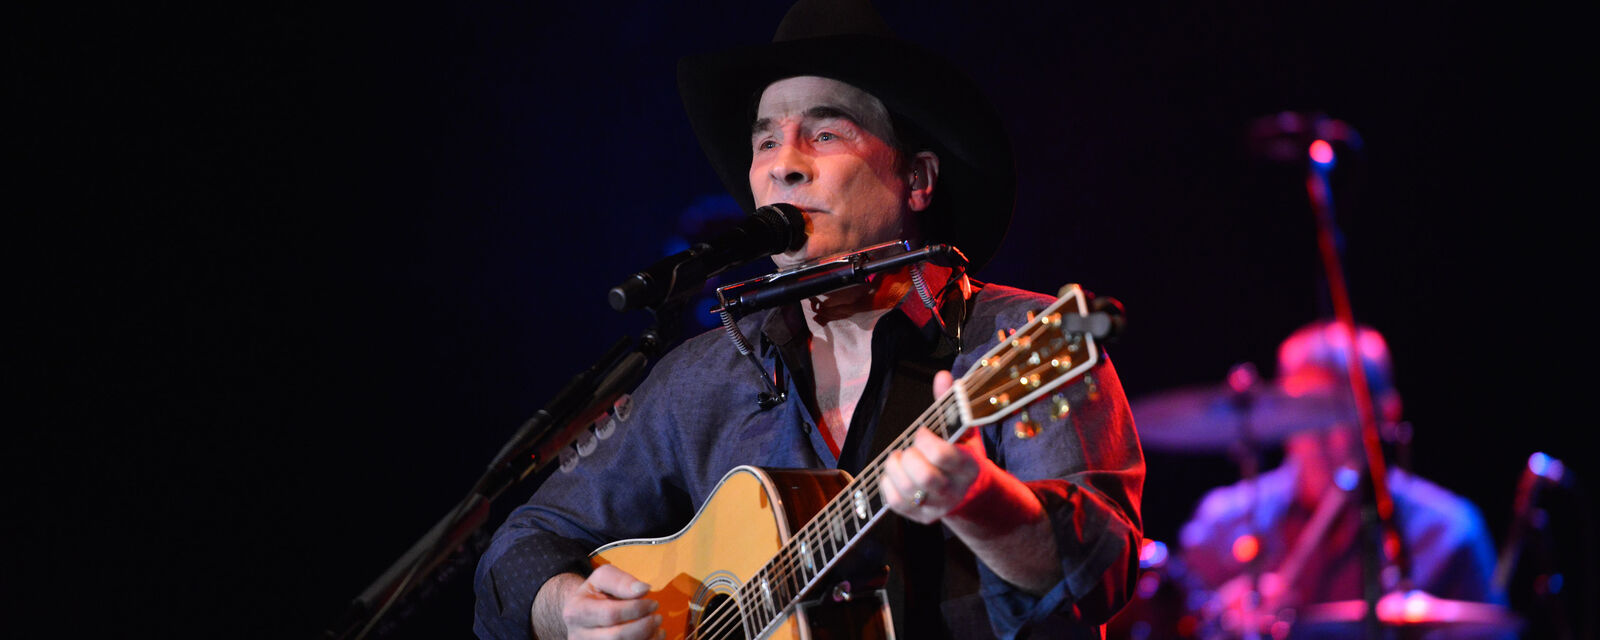 Clint Black and Sara Evans Tickets (21+ Event)